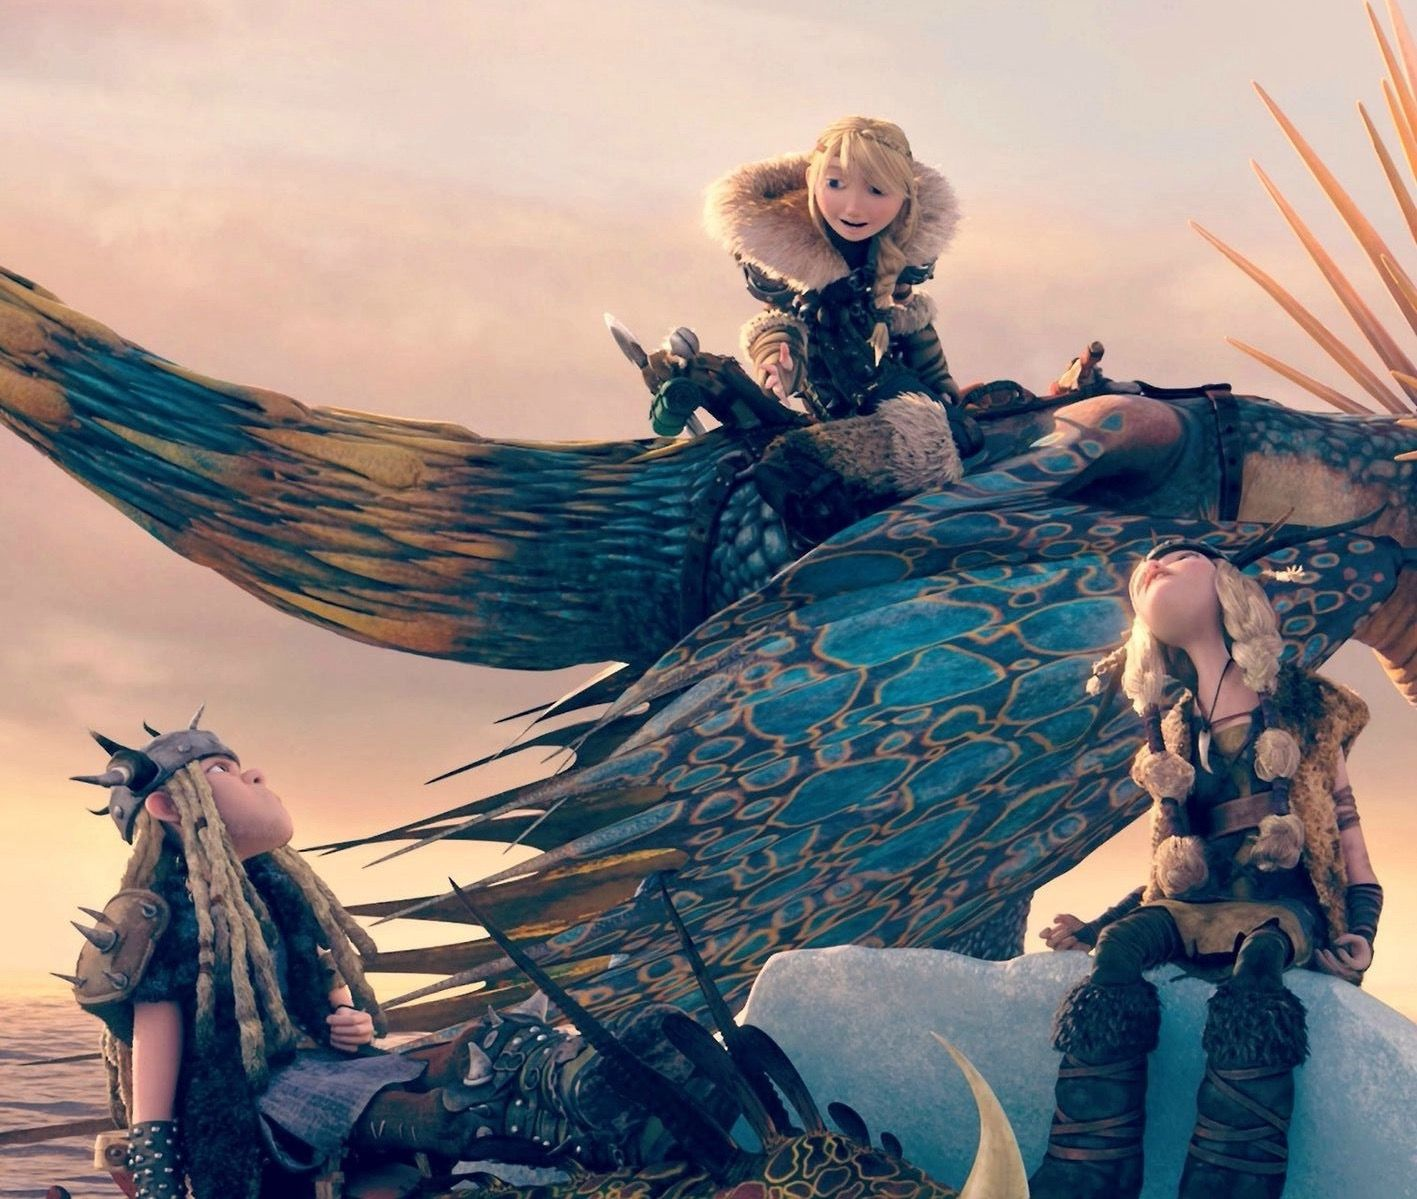 Astrid, Stormfly, And The Twins HTTYD 2